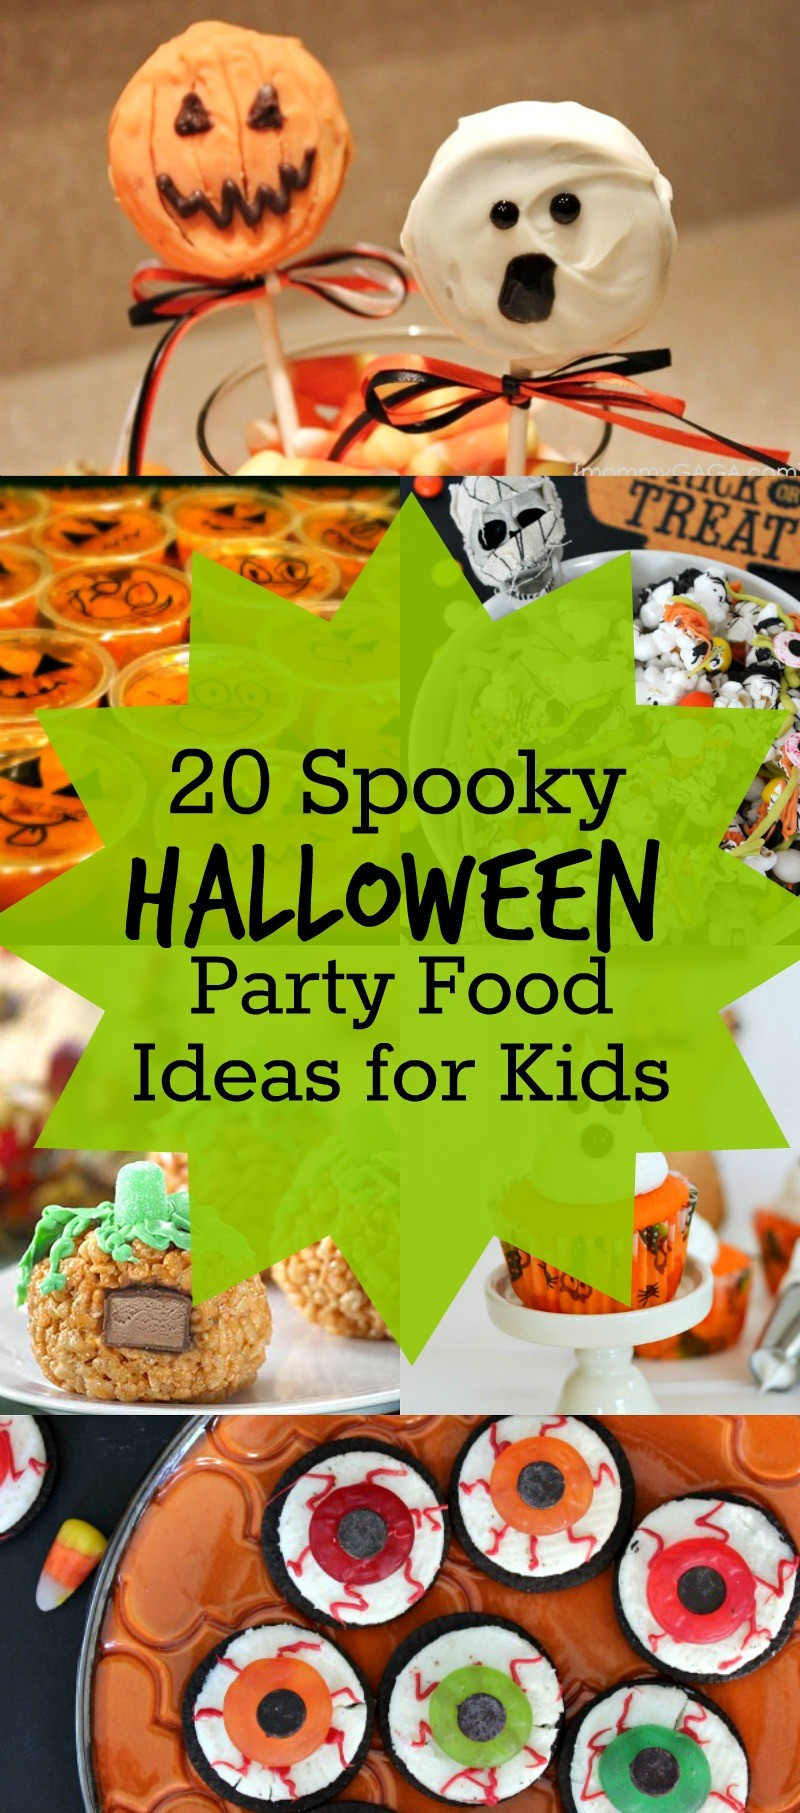 Halloween Food Ideas For Toddlers Party  20 Spooky Halloween Party Food Ideas for Kids Such cute